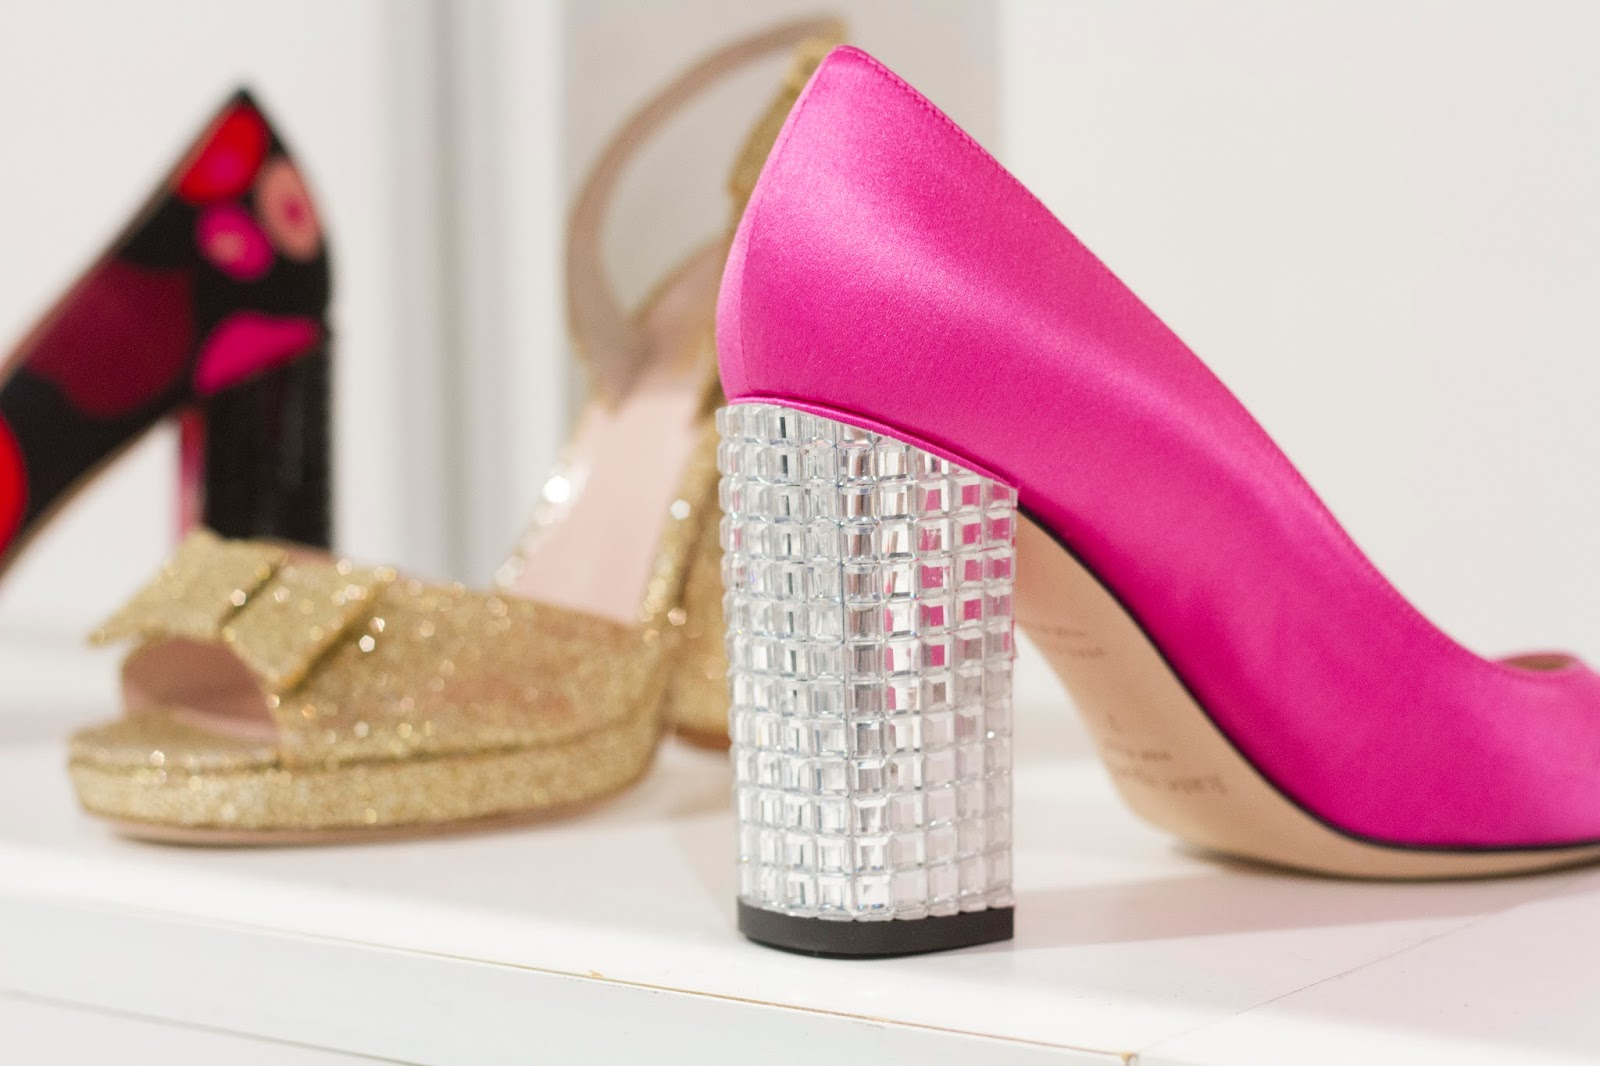 kate spade new york fall 2015 shoe collection pink heels